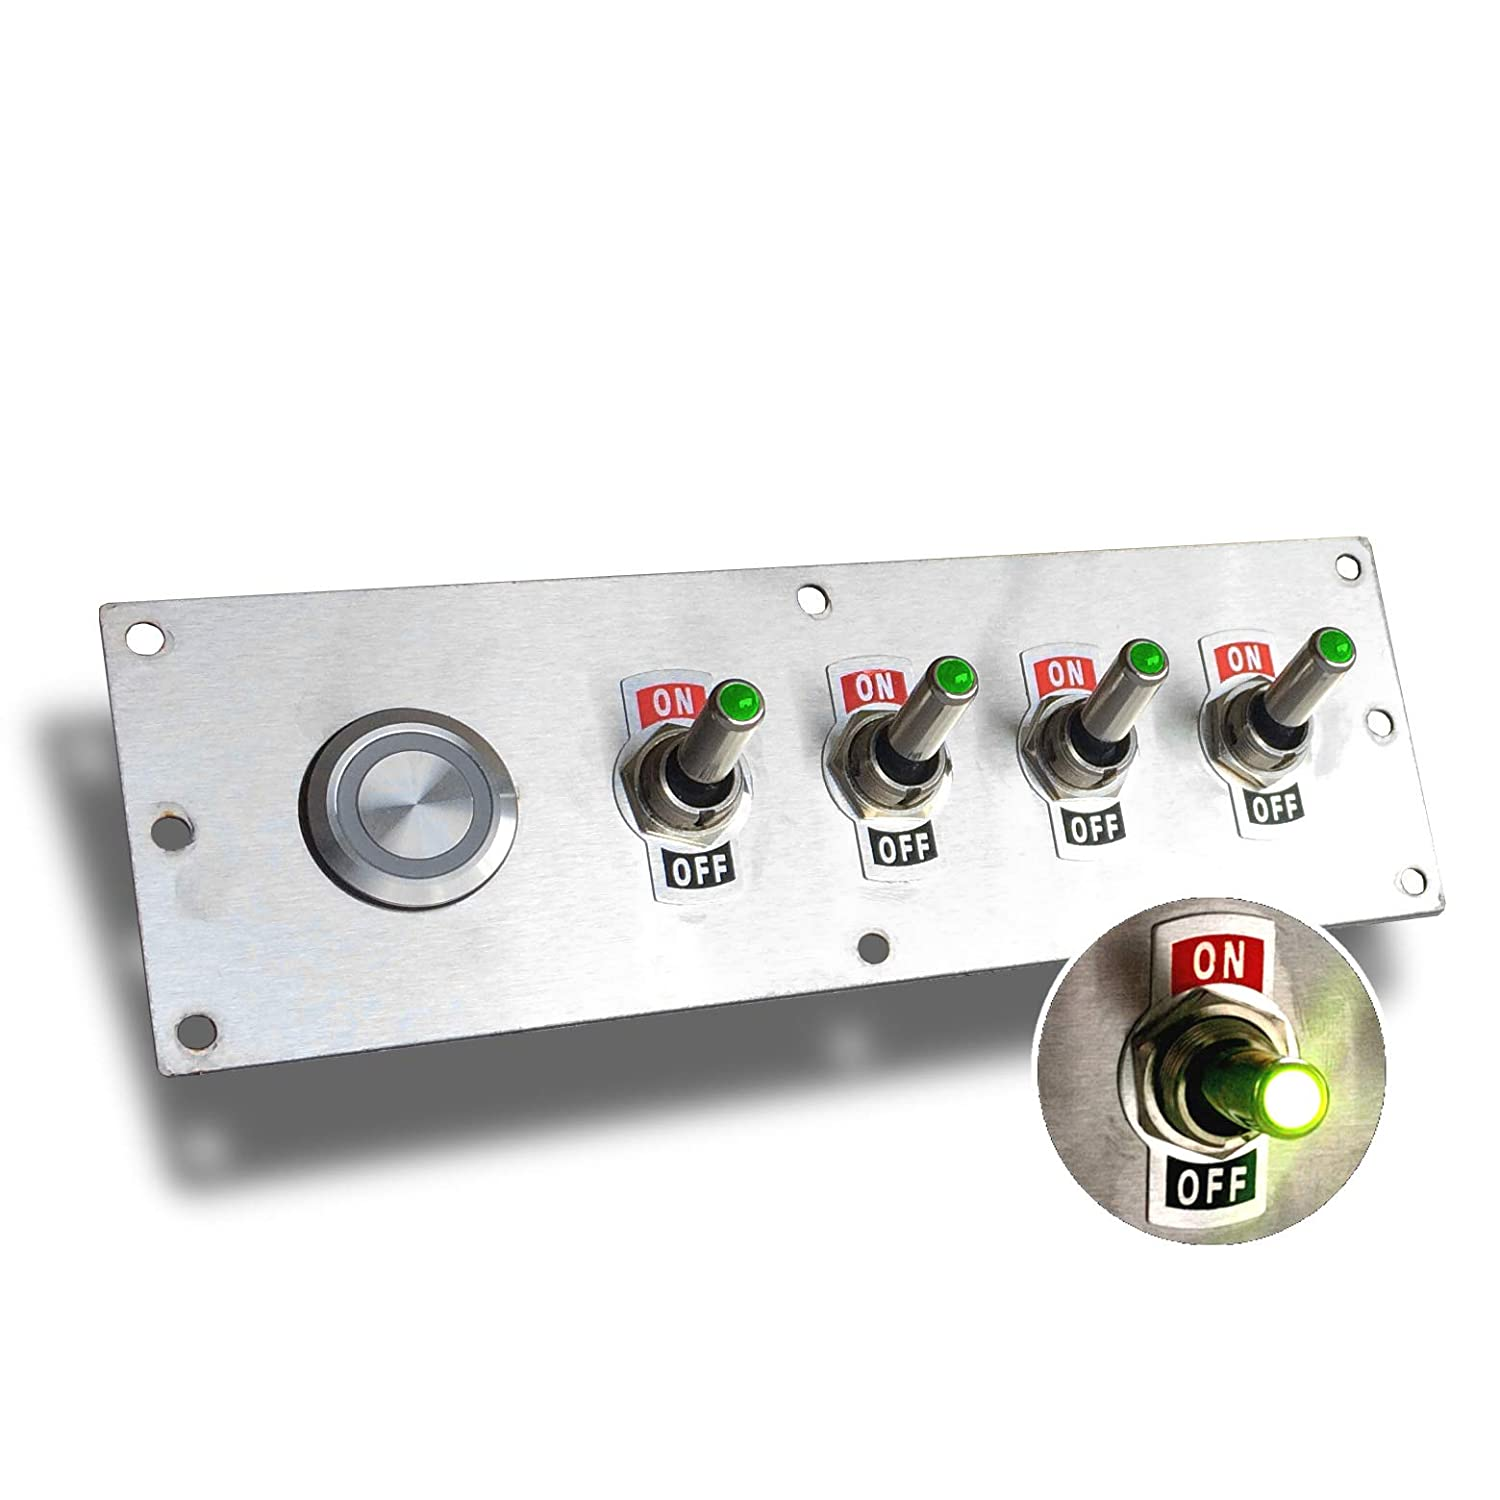 12 Volt Lighted Toggle Switch Panel with Green LEDs for Race Car and Truck MGI